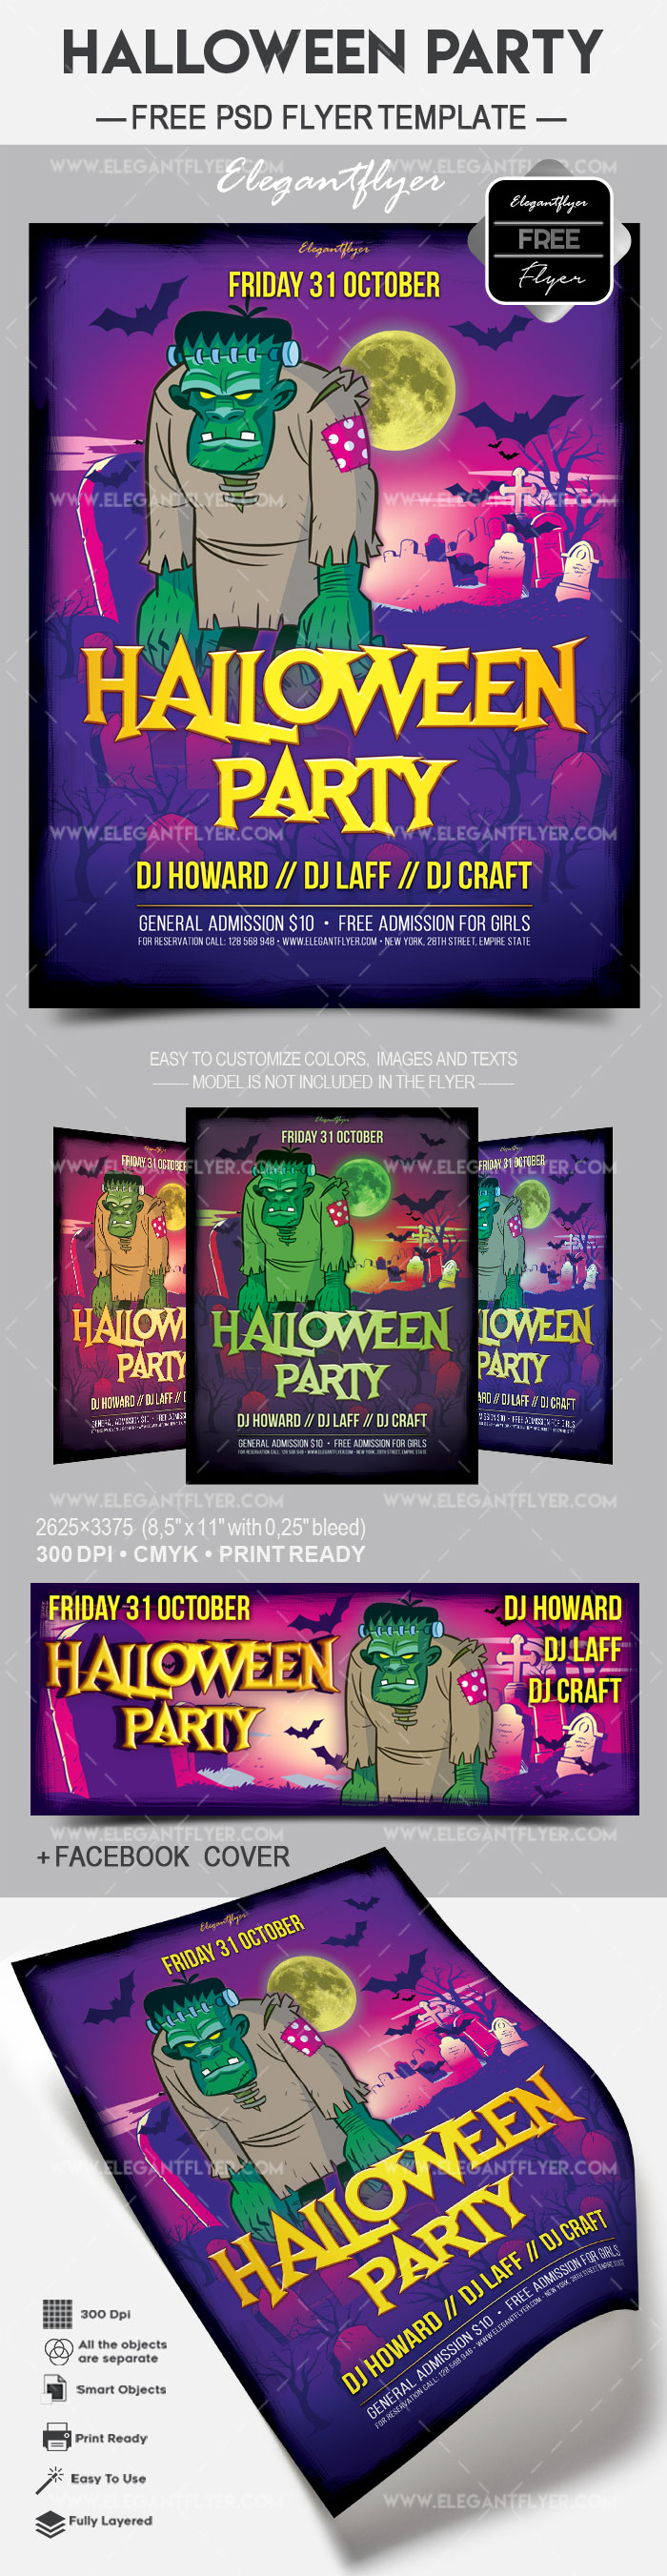 Halloween Free Flyer Templates